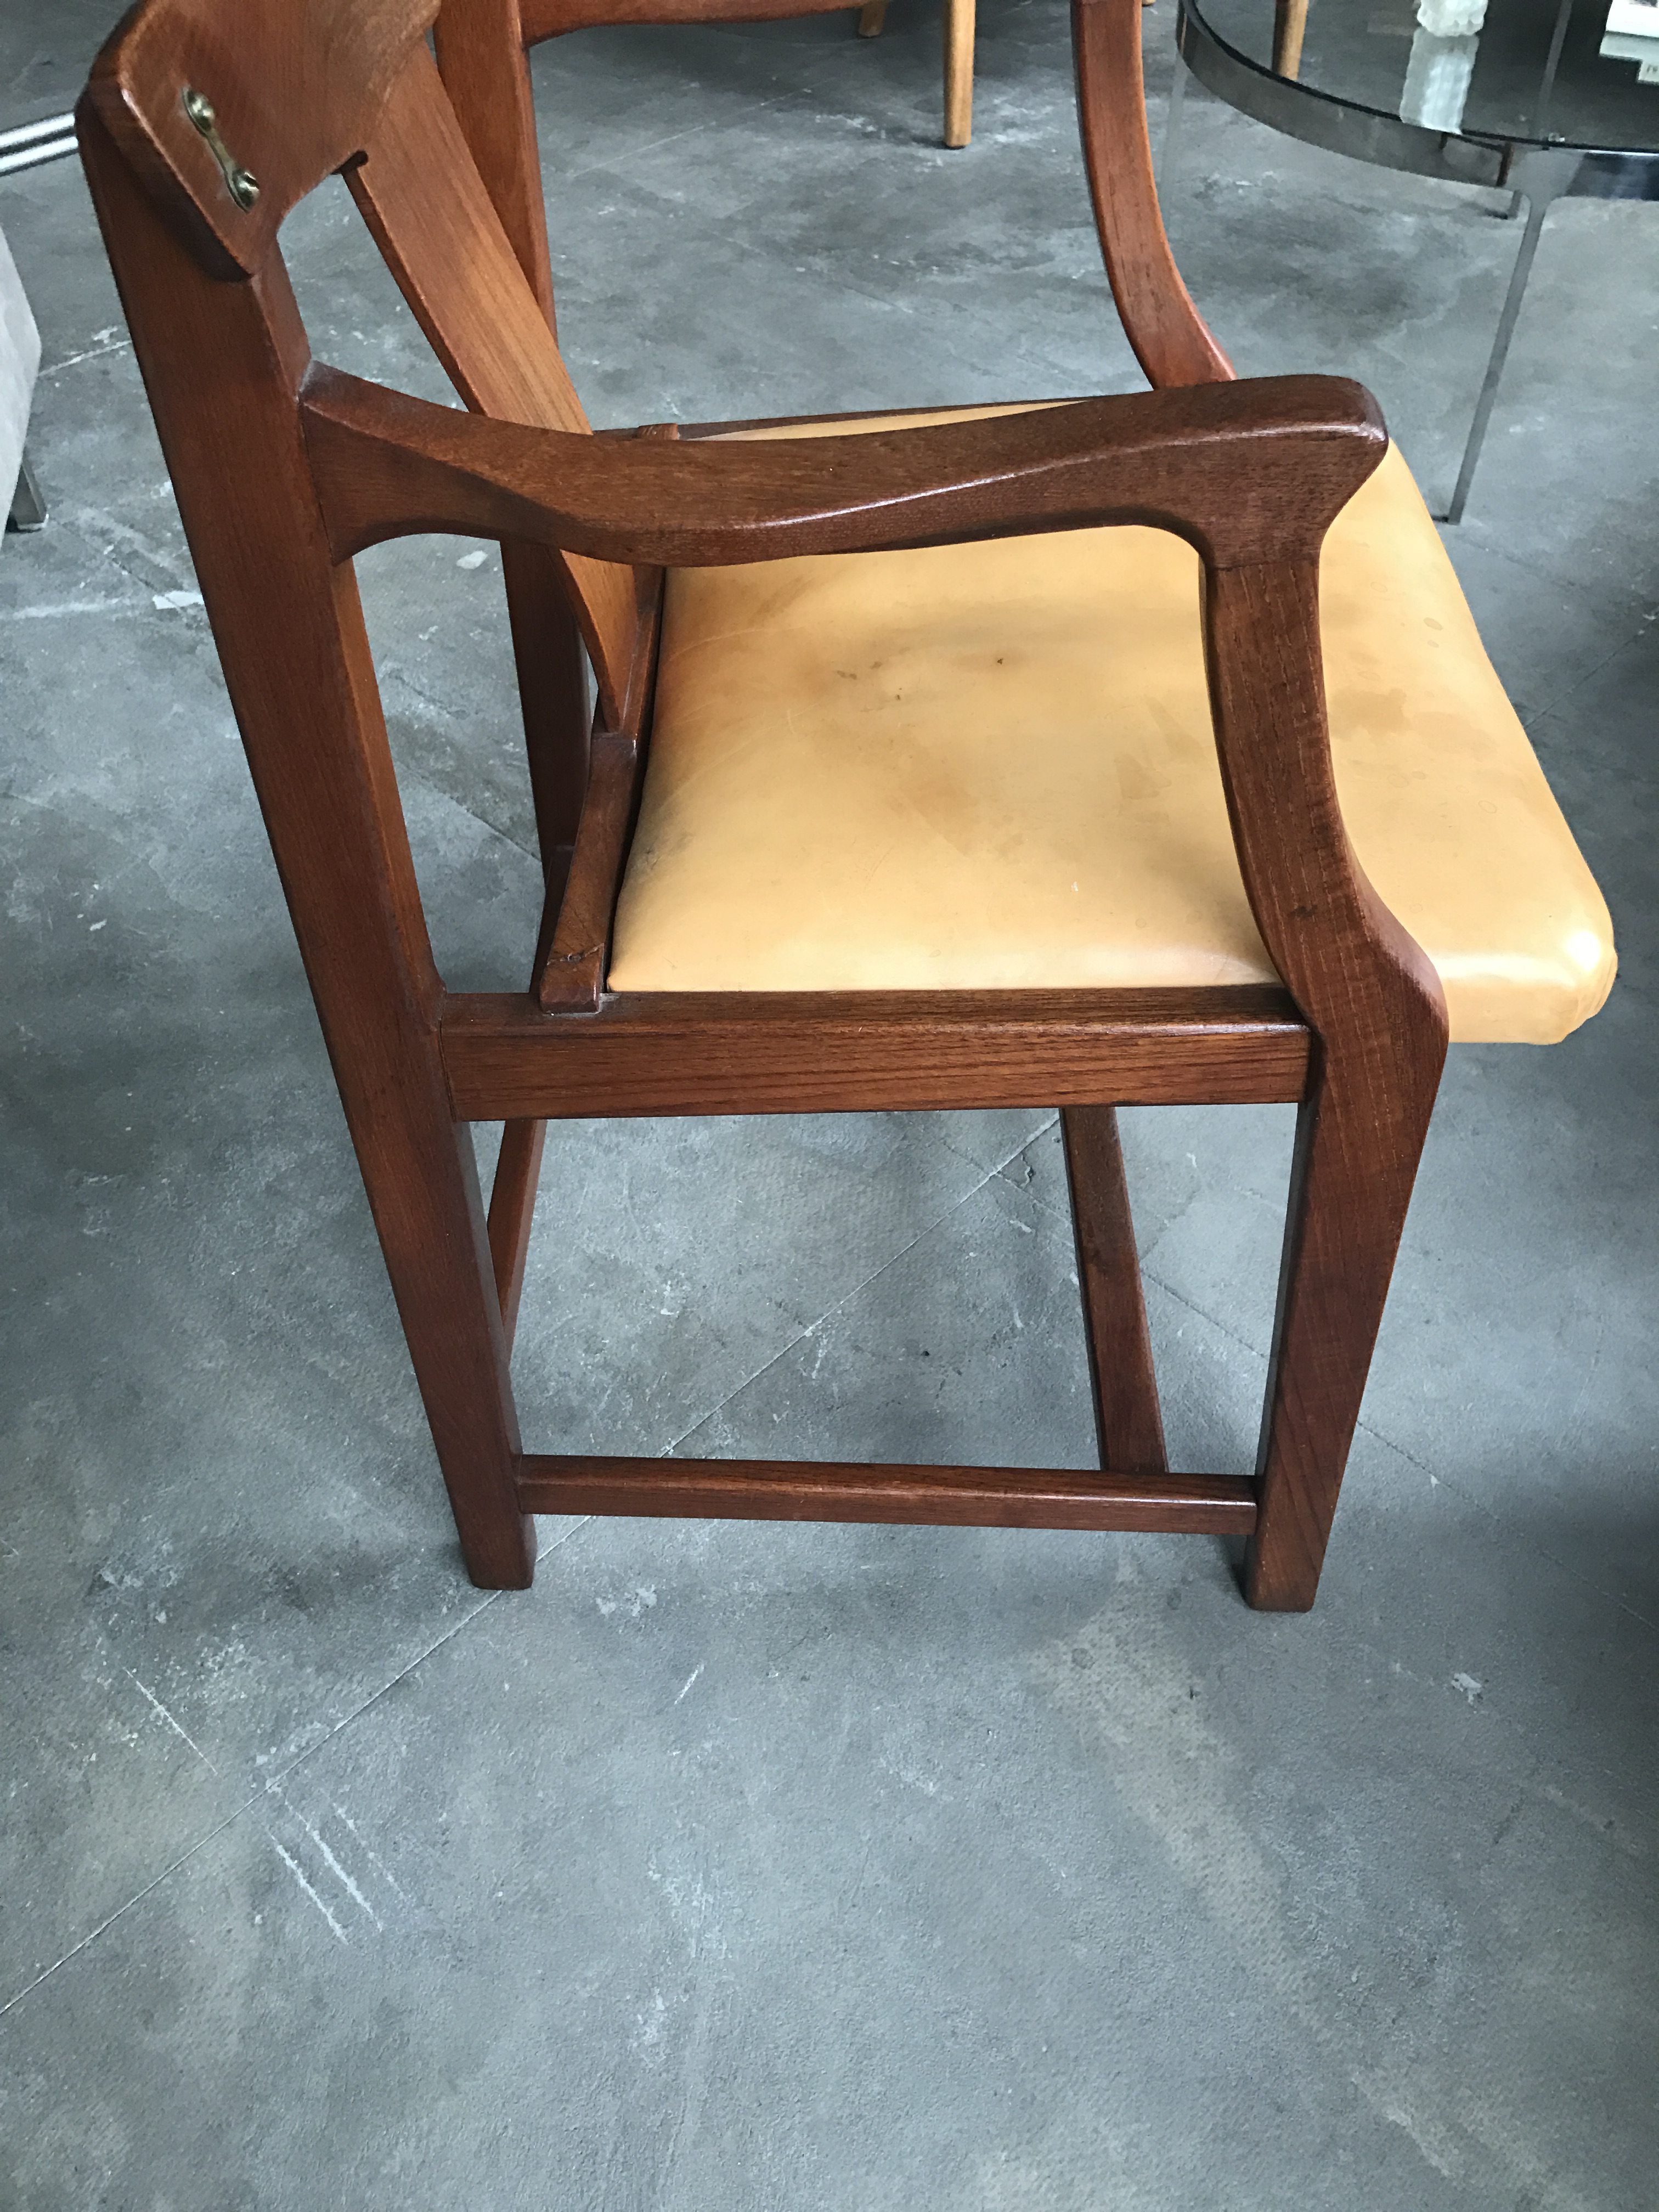 Y/M Court Adler Chair By Bjorn Engo   Image 3 Of 5